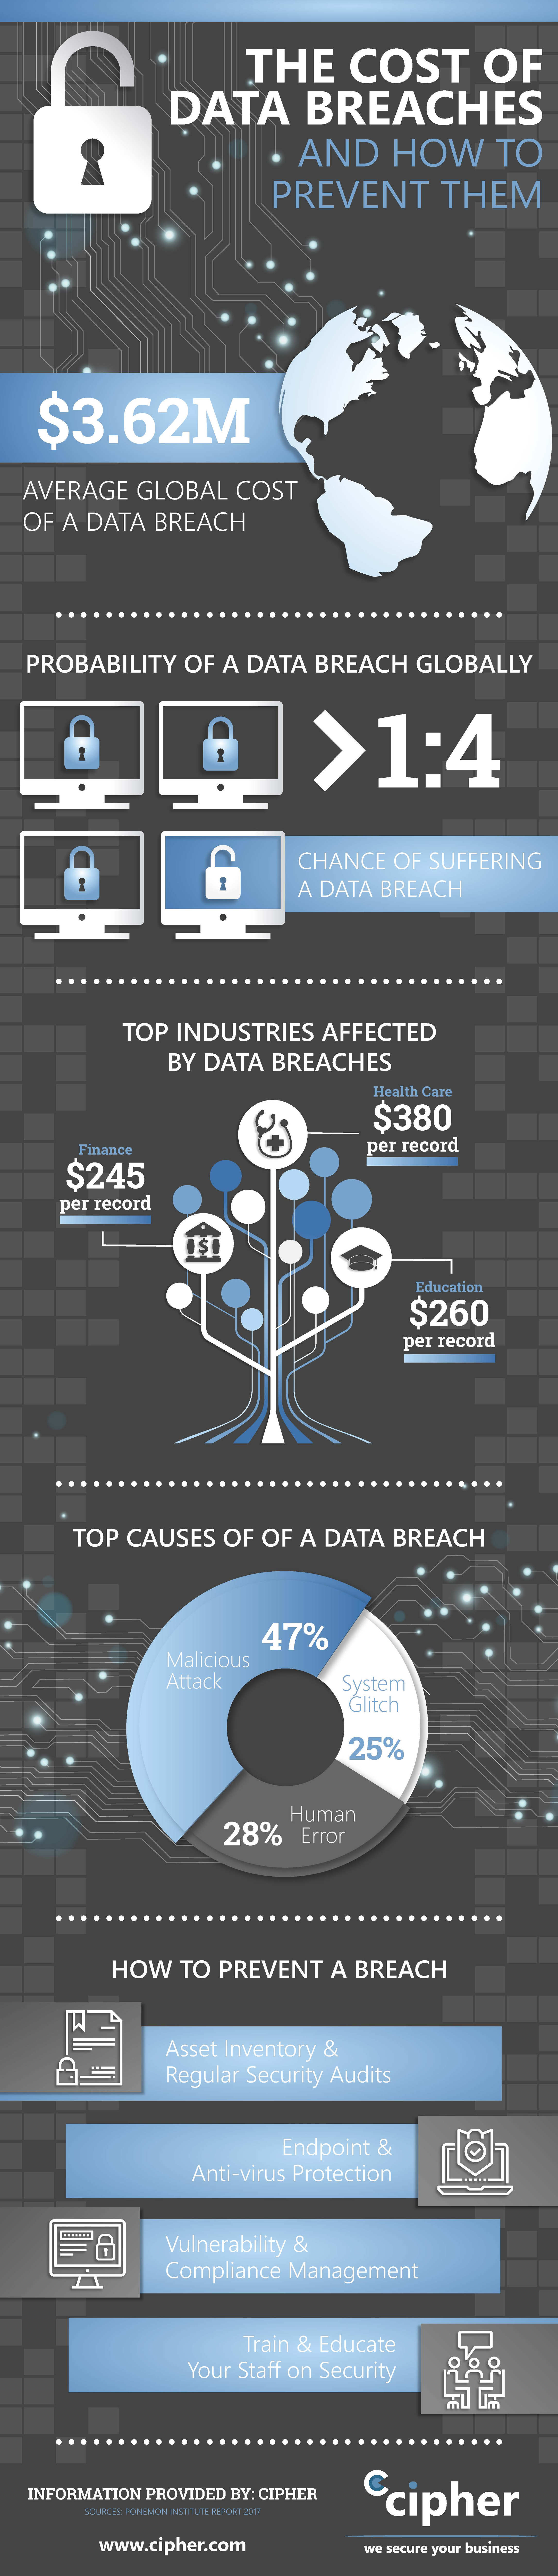 Cost-of-Data-Breach-How-To-Prevent-Them-Infographic.jpg